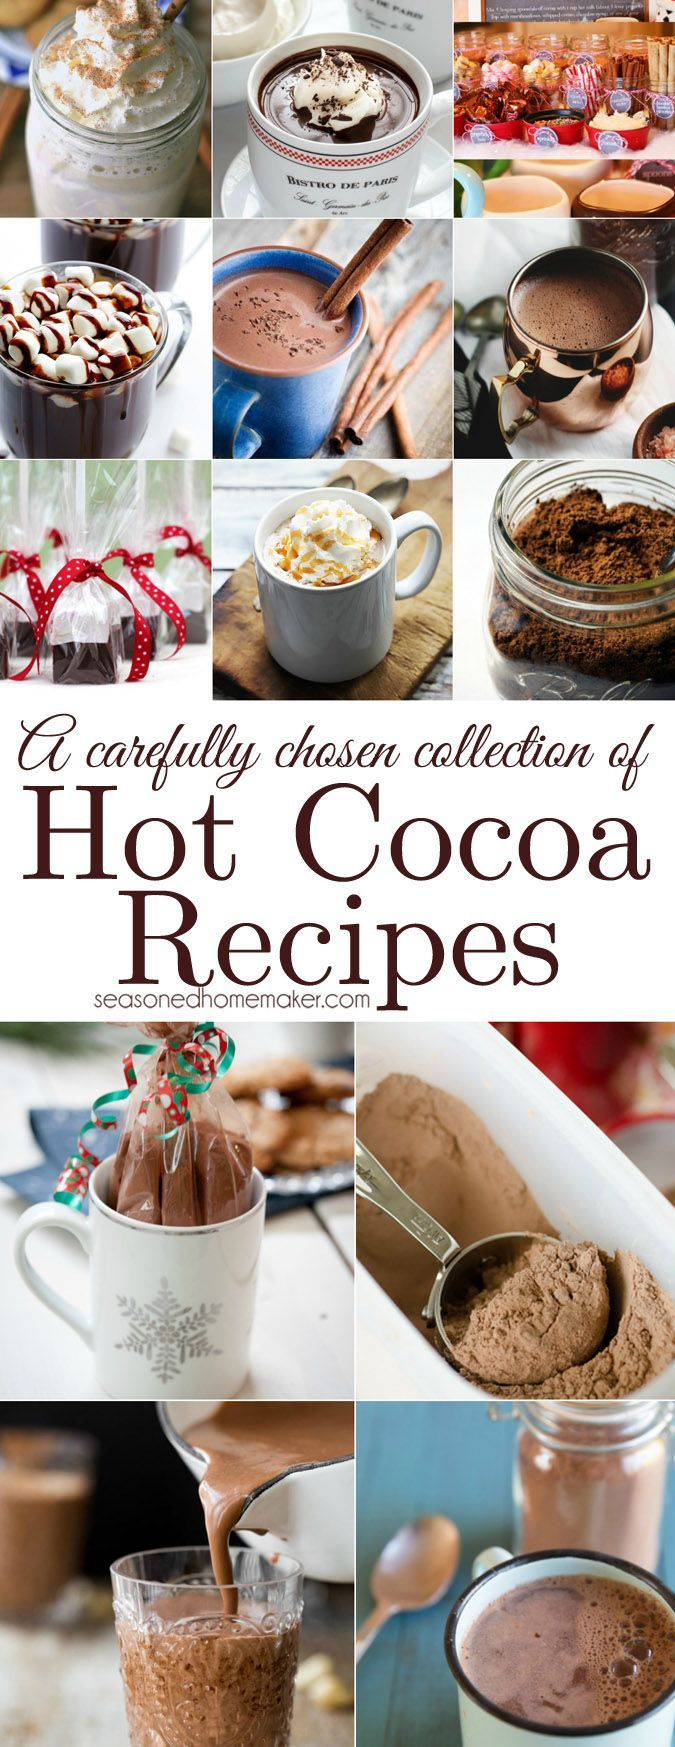 The Best Hot Chocolate Recipes   A carefully chosen collection of yummy hot chocolate recipes the whole family will surely love. Perfect for cold Winter days, but also great for Christmas!